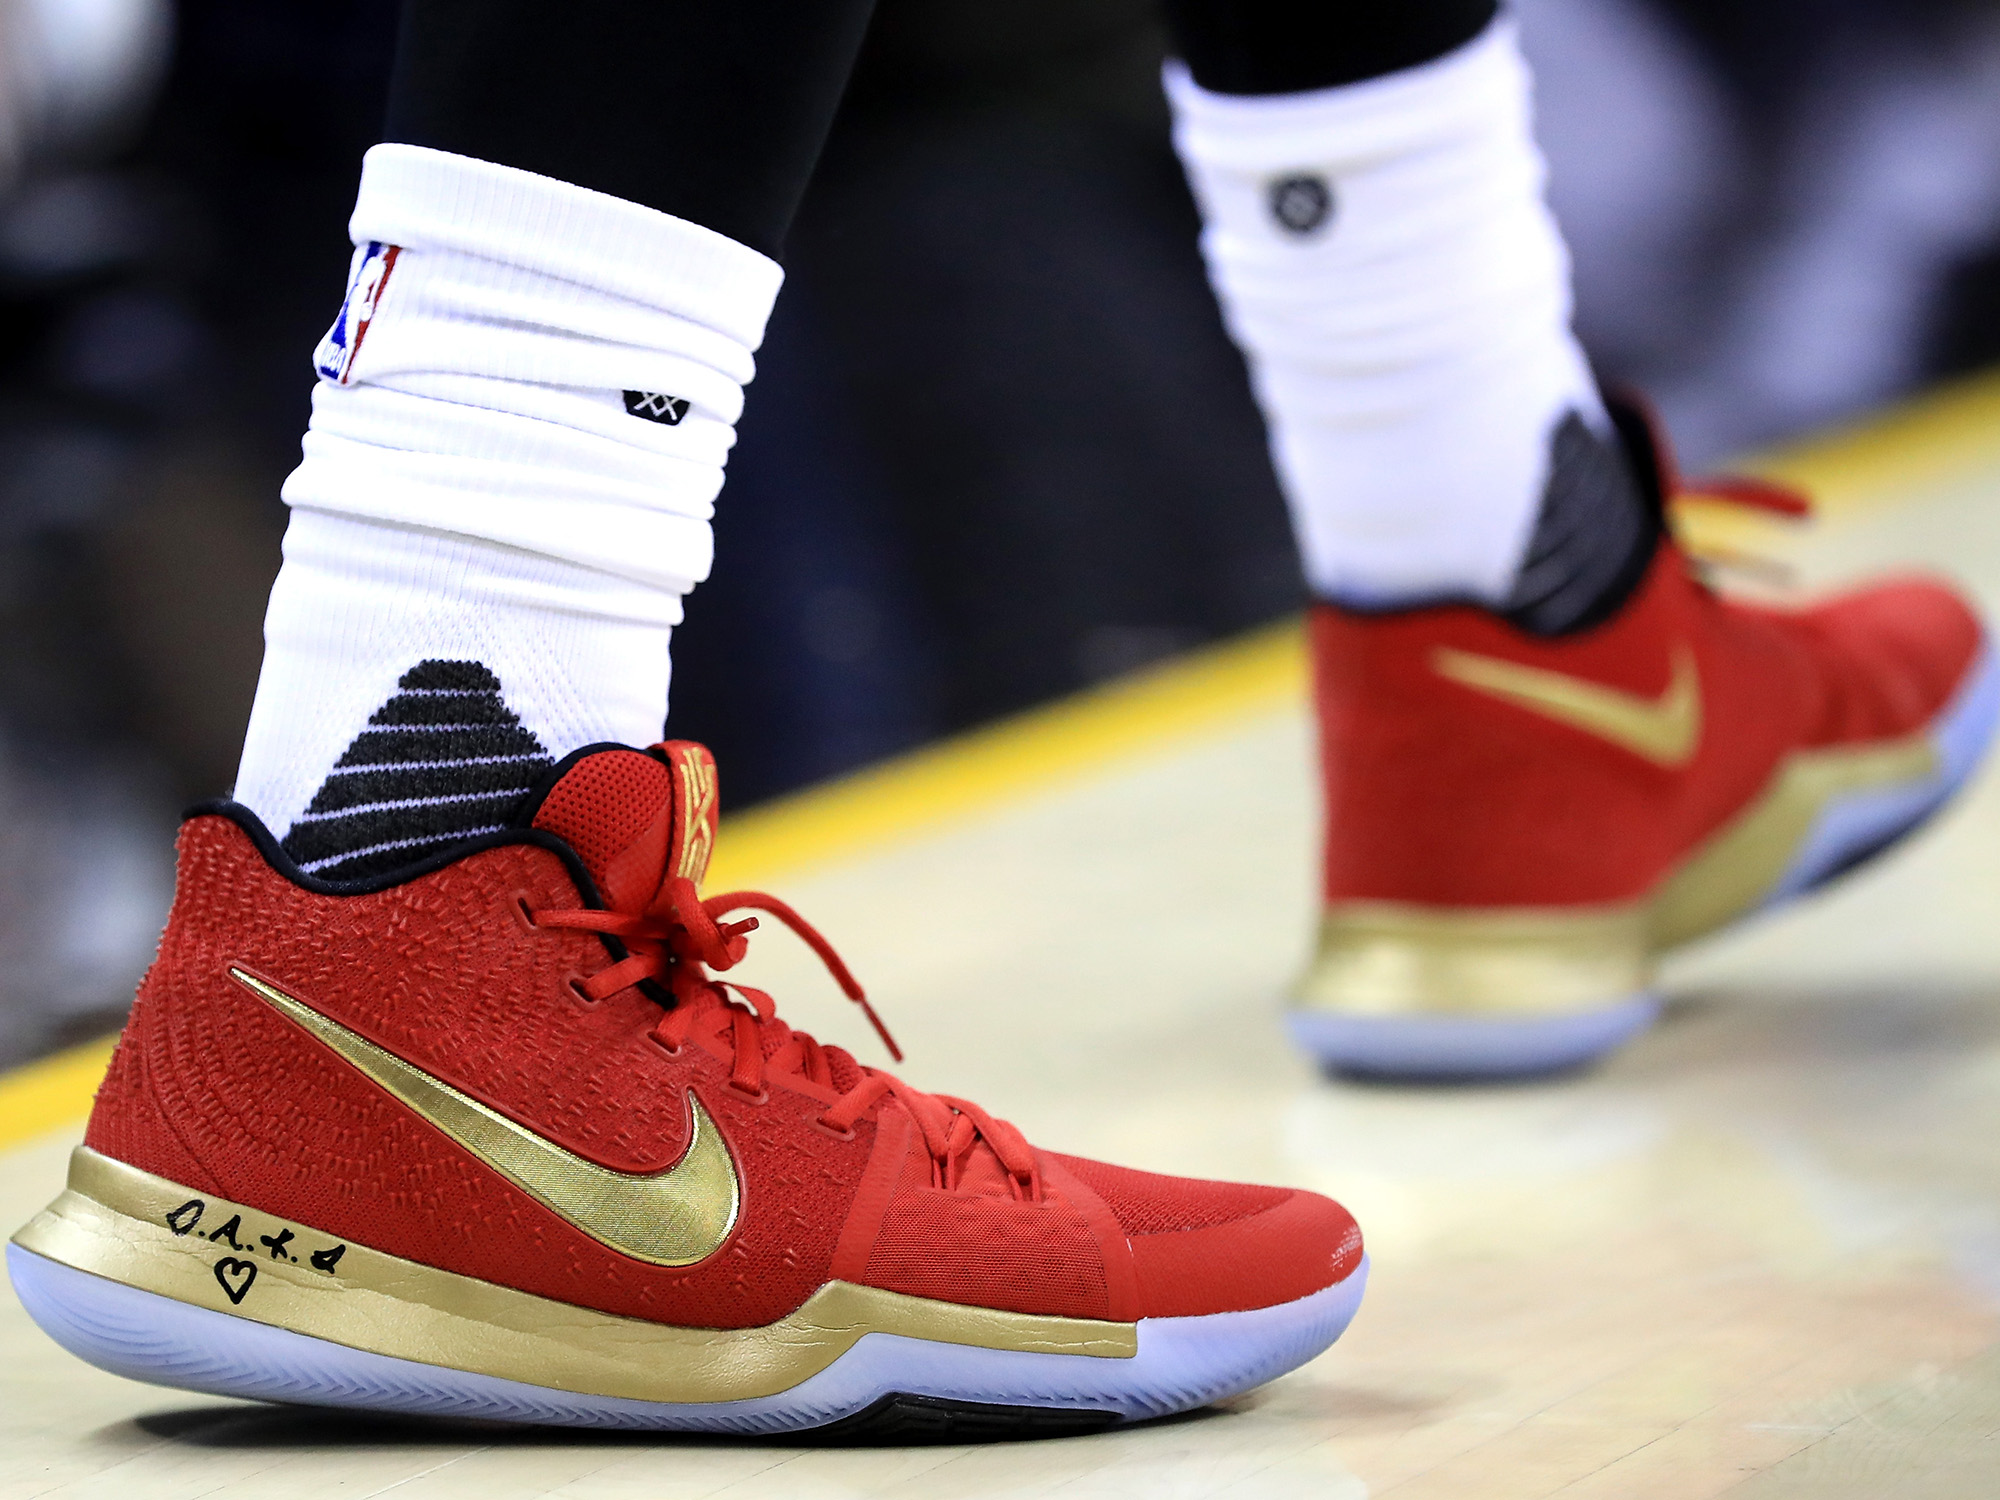 Nike Kyrie 3 PE worn by Kyrie Irving